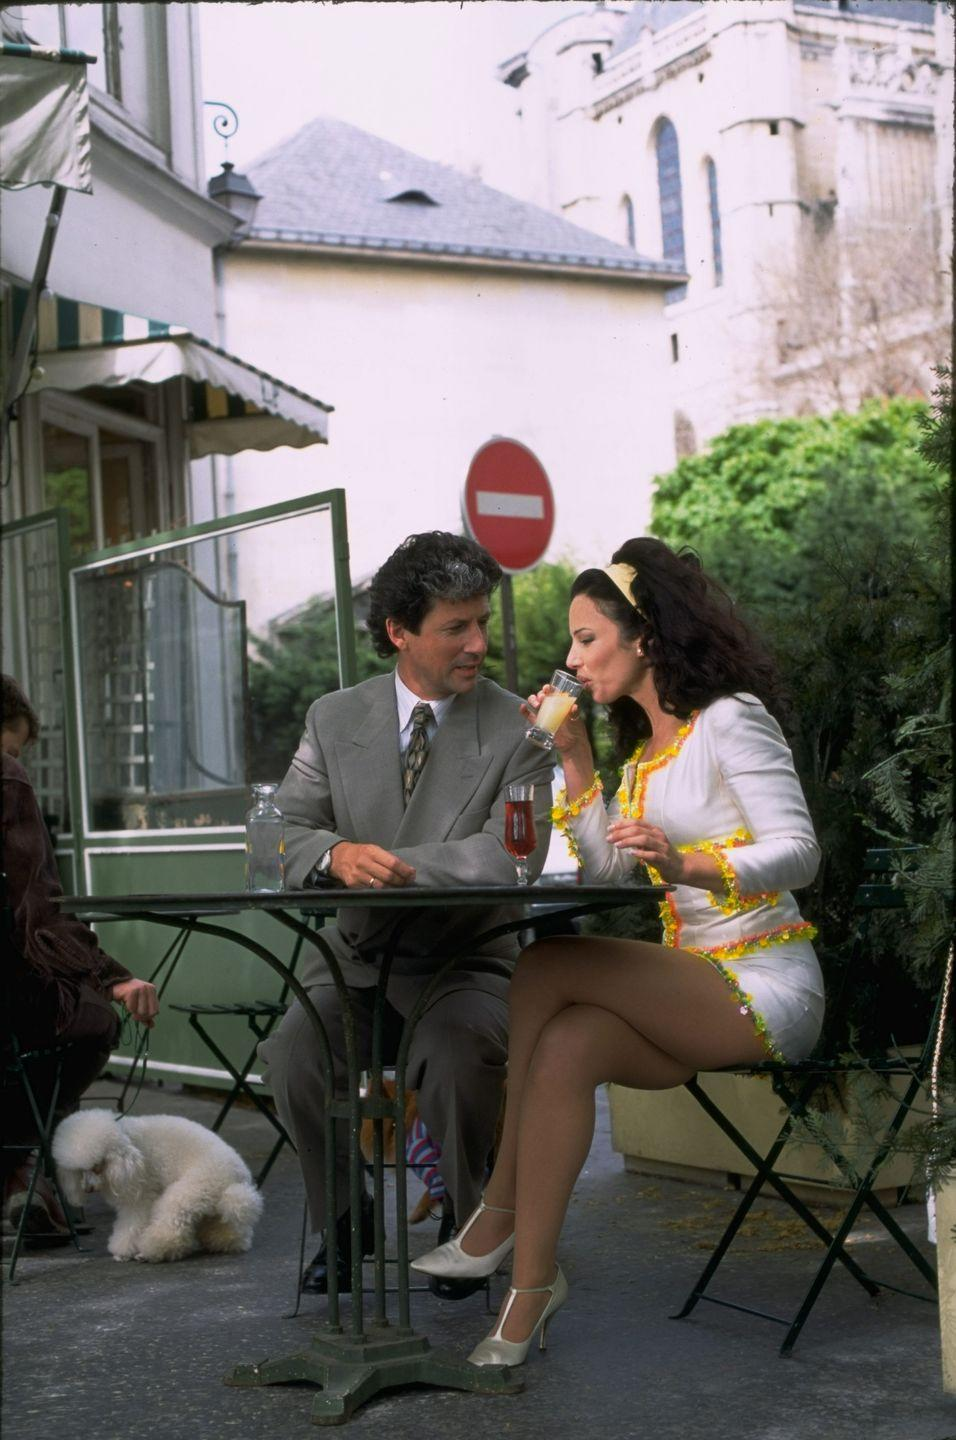 <p>Fran Drescher's character in the television sitcom <em>The Nanny </em>is known best for her flamboyant yet iconic wardrobe (and her expansive collection of skirt suits). To re-create the look, splurge on a vintage set that you can wear well after your office's Halloween get-together is over.<br></p>